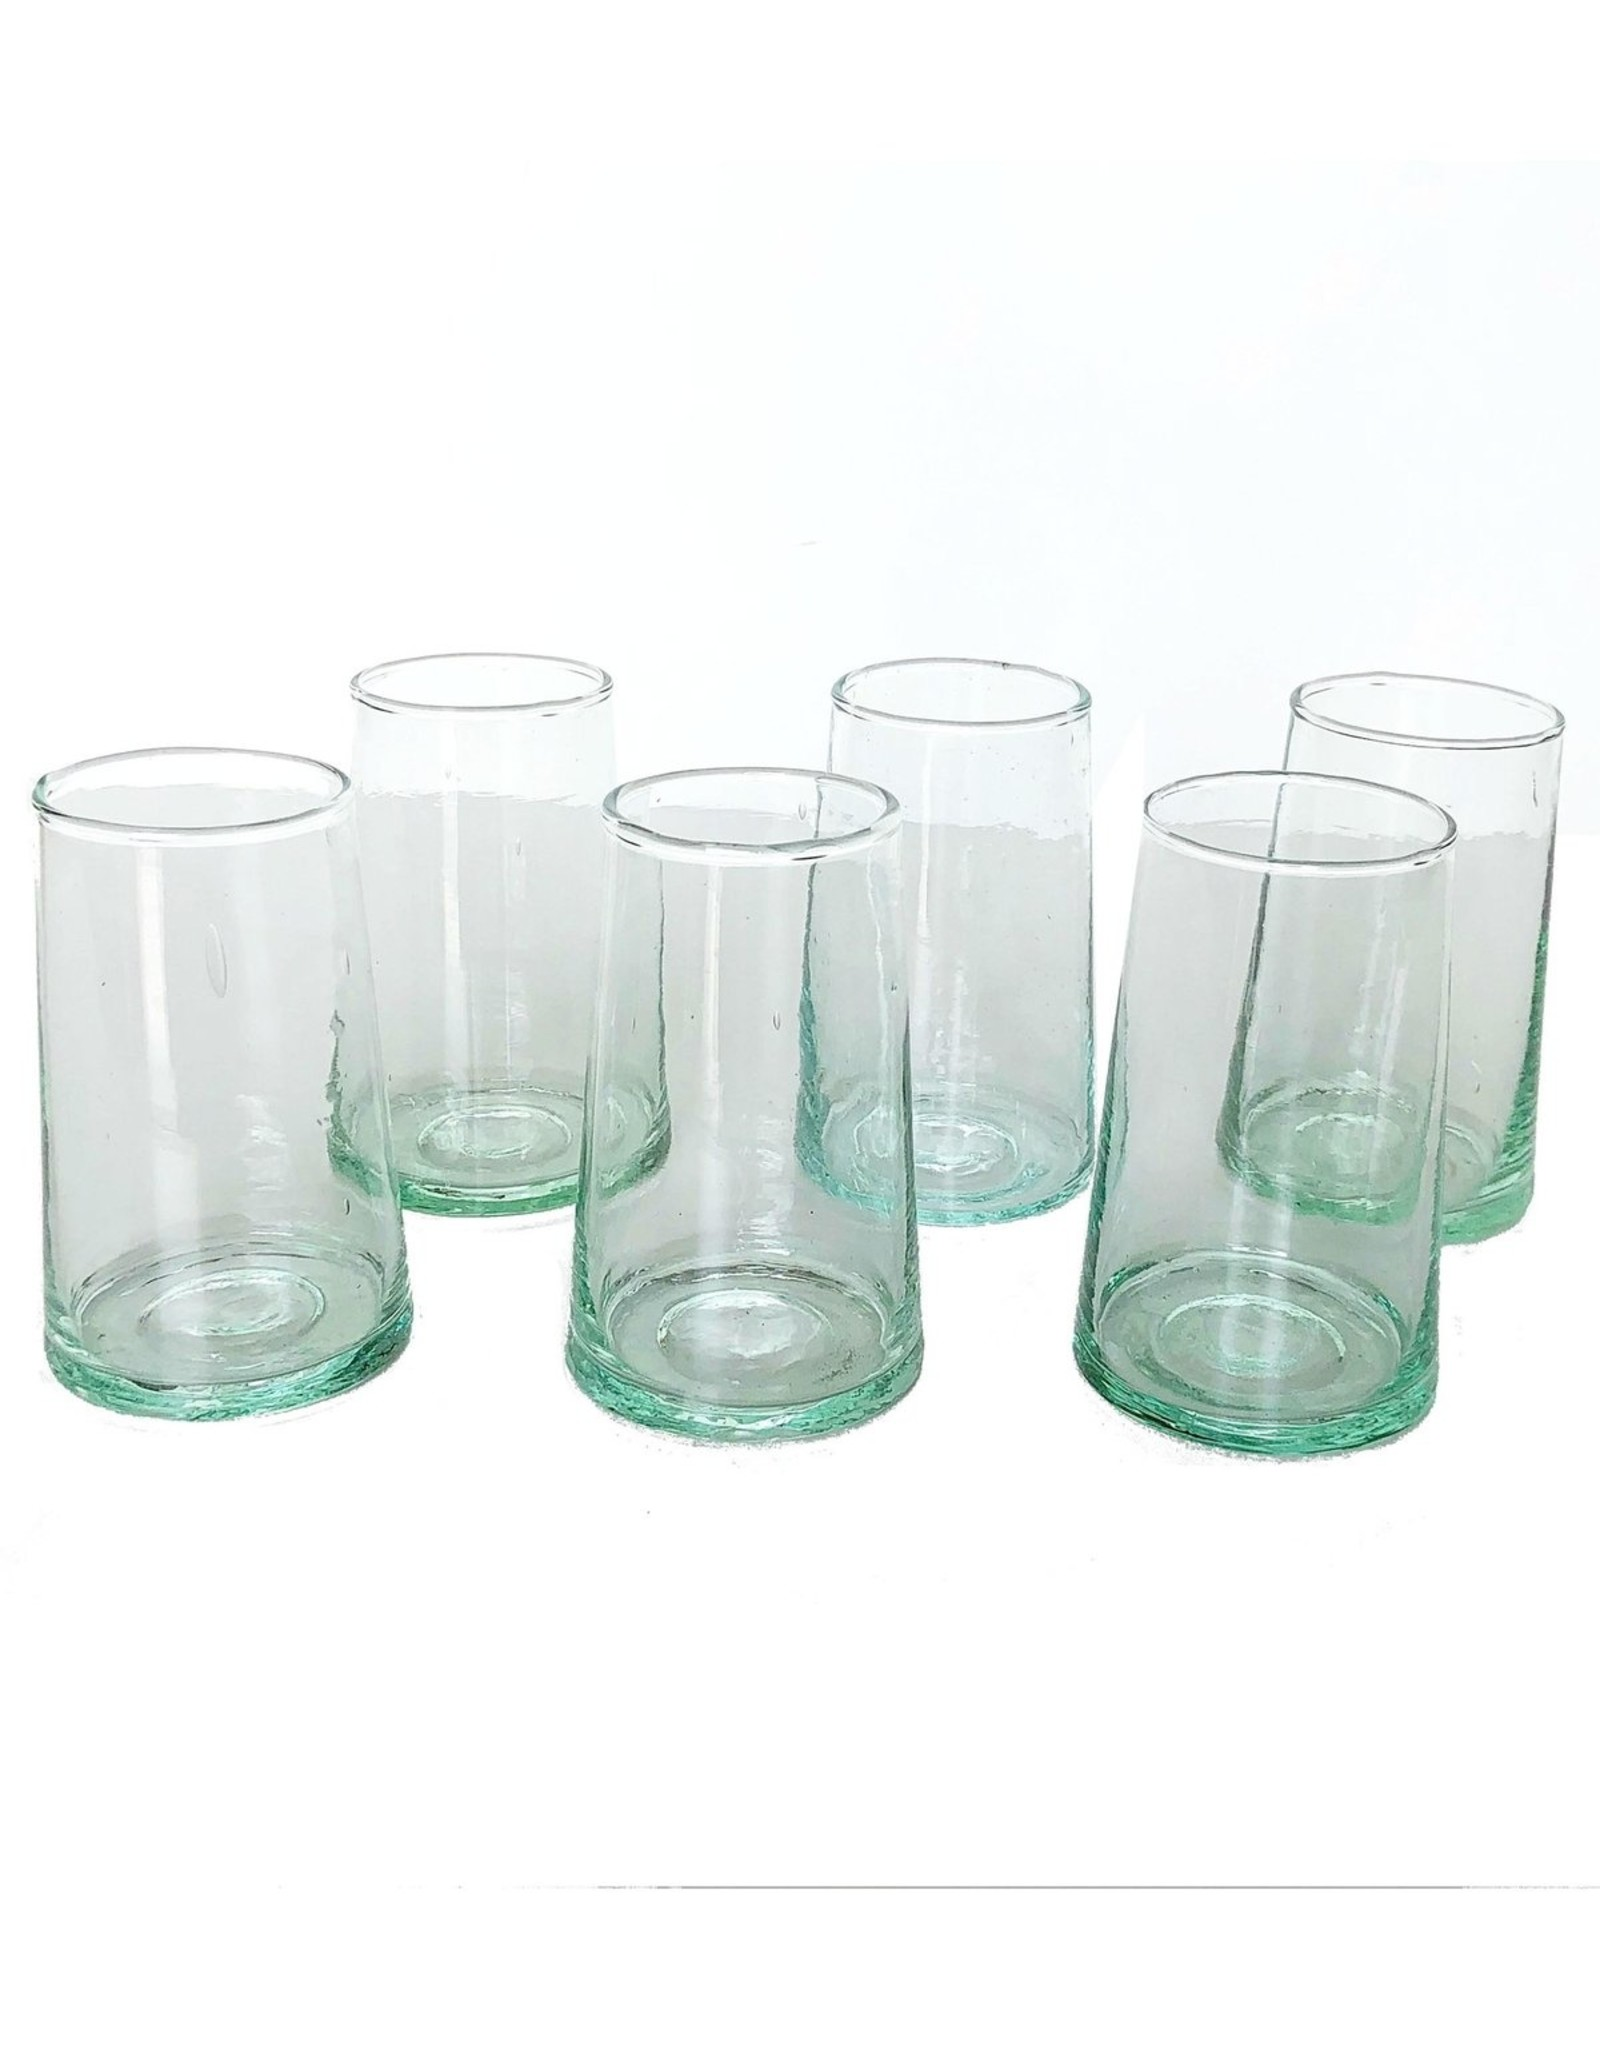 atelierBoemia Blown Recycled Water Glass S/6